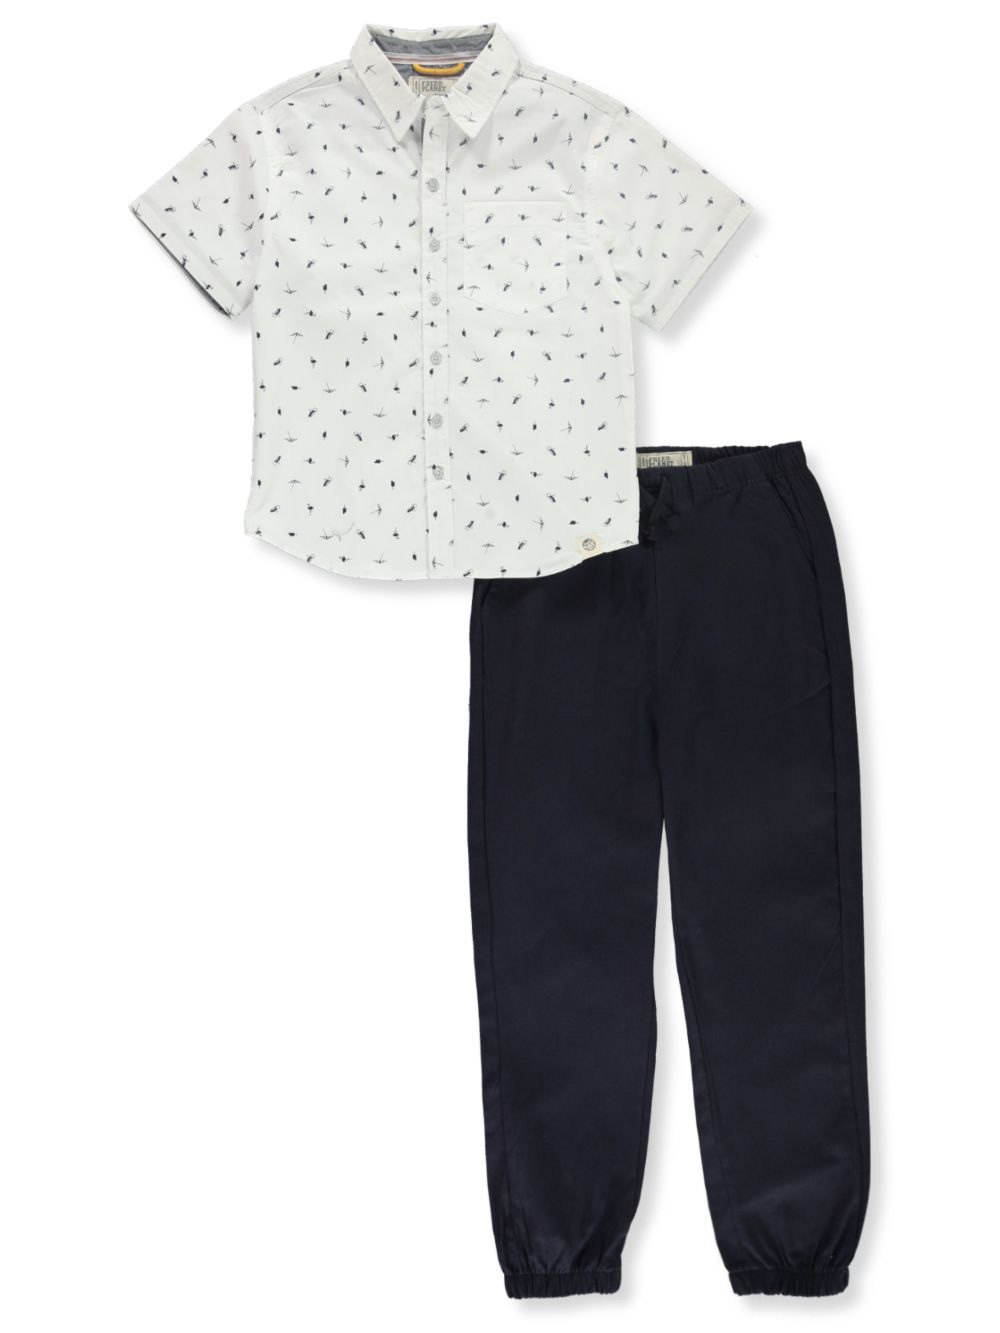 Abstract 2-Piece Joggers Set Outfit